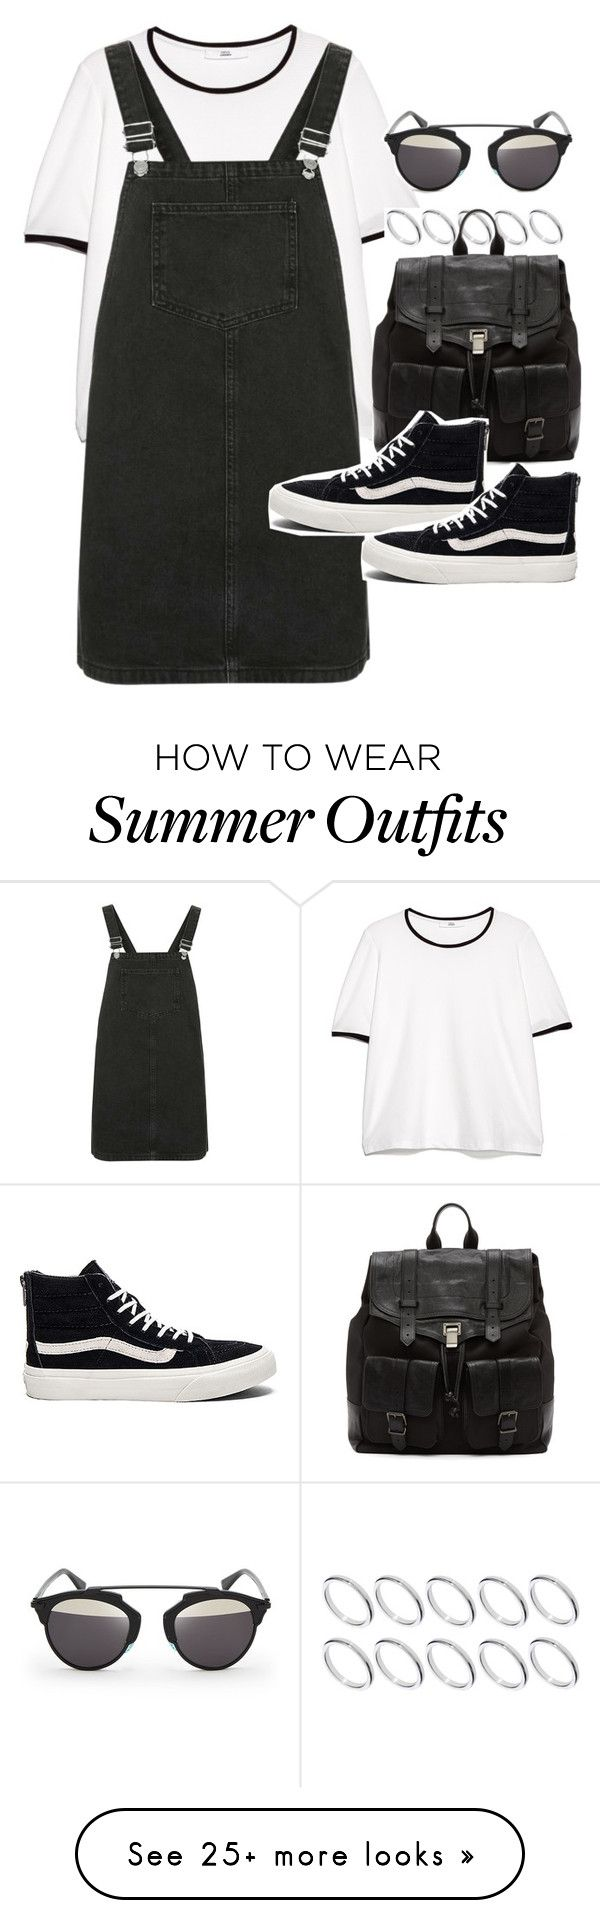 """Outfit for summer with a pinafore"" by ferned on Polyvore featuring MANGO, ASOS, Topshop, Proenza Schouler, Vans and Christian Dior"